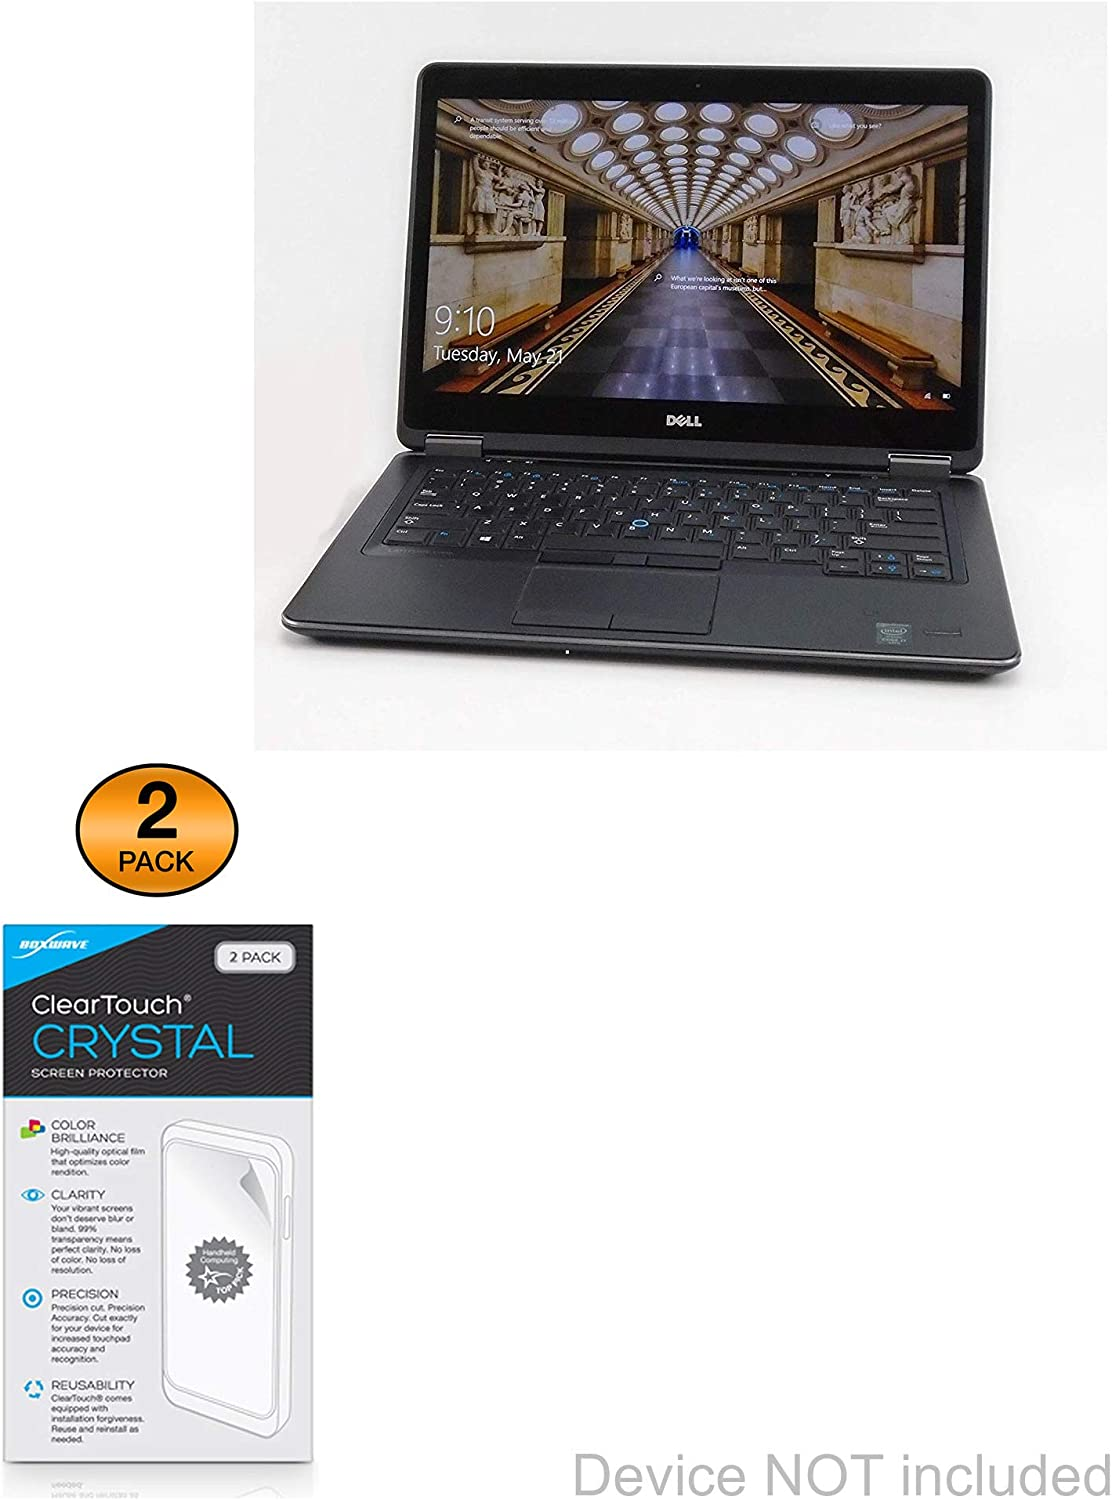 Dell E7440 Touchscreen (14 in) Screen Protector, BoxWave [ClearTouch Crystal (2-Pack)] HD Film Skin - Shields from Scratches for Dell E7440 Touchscreen (14 in)